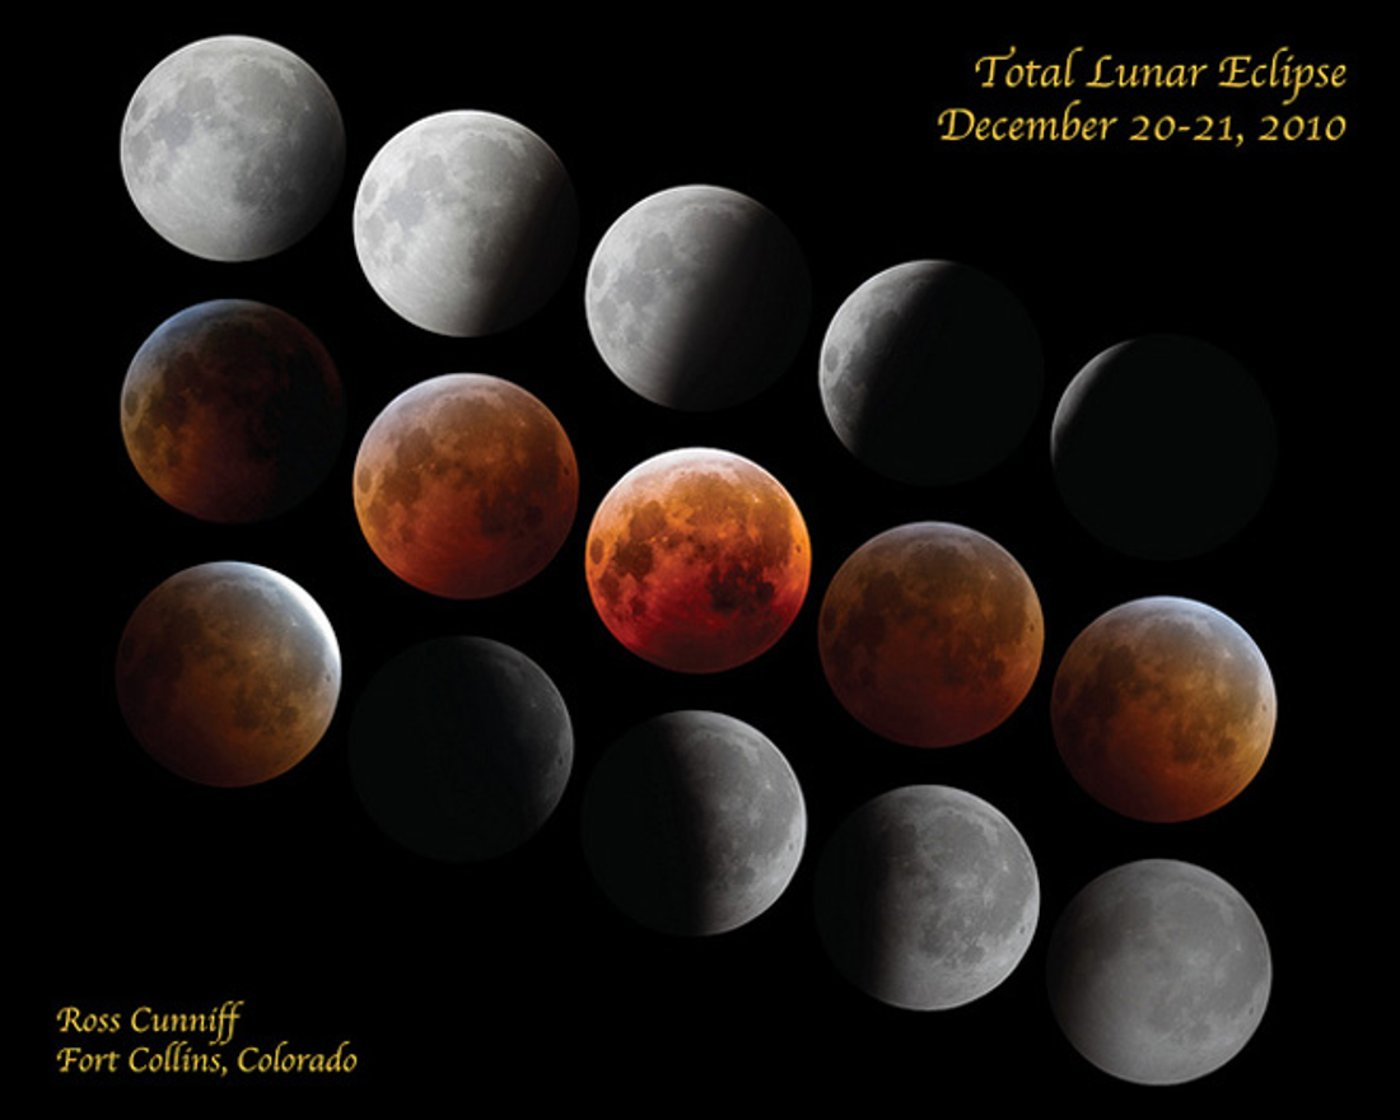 Total Lunar Eclipse to coincide with Winter Solstice in almost 400 ...